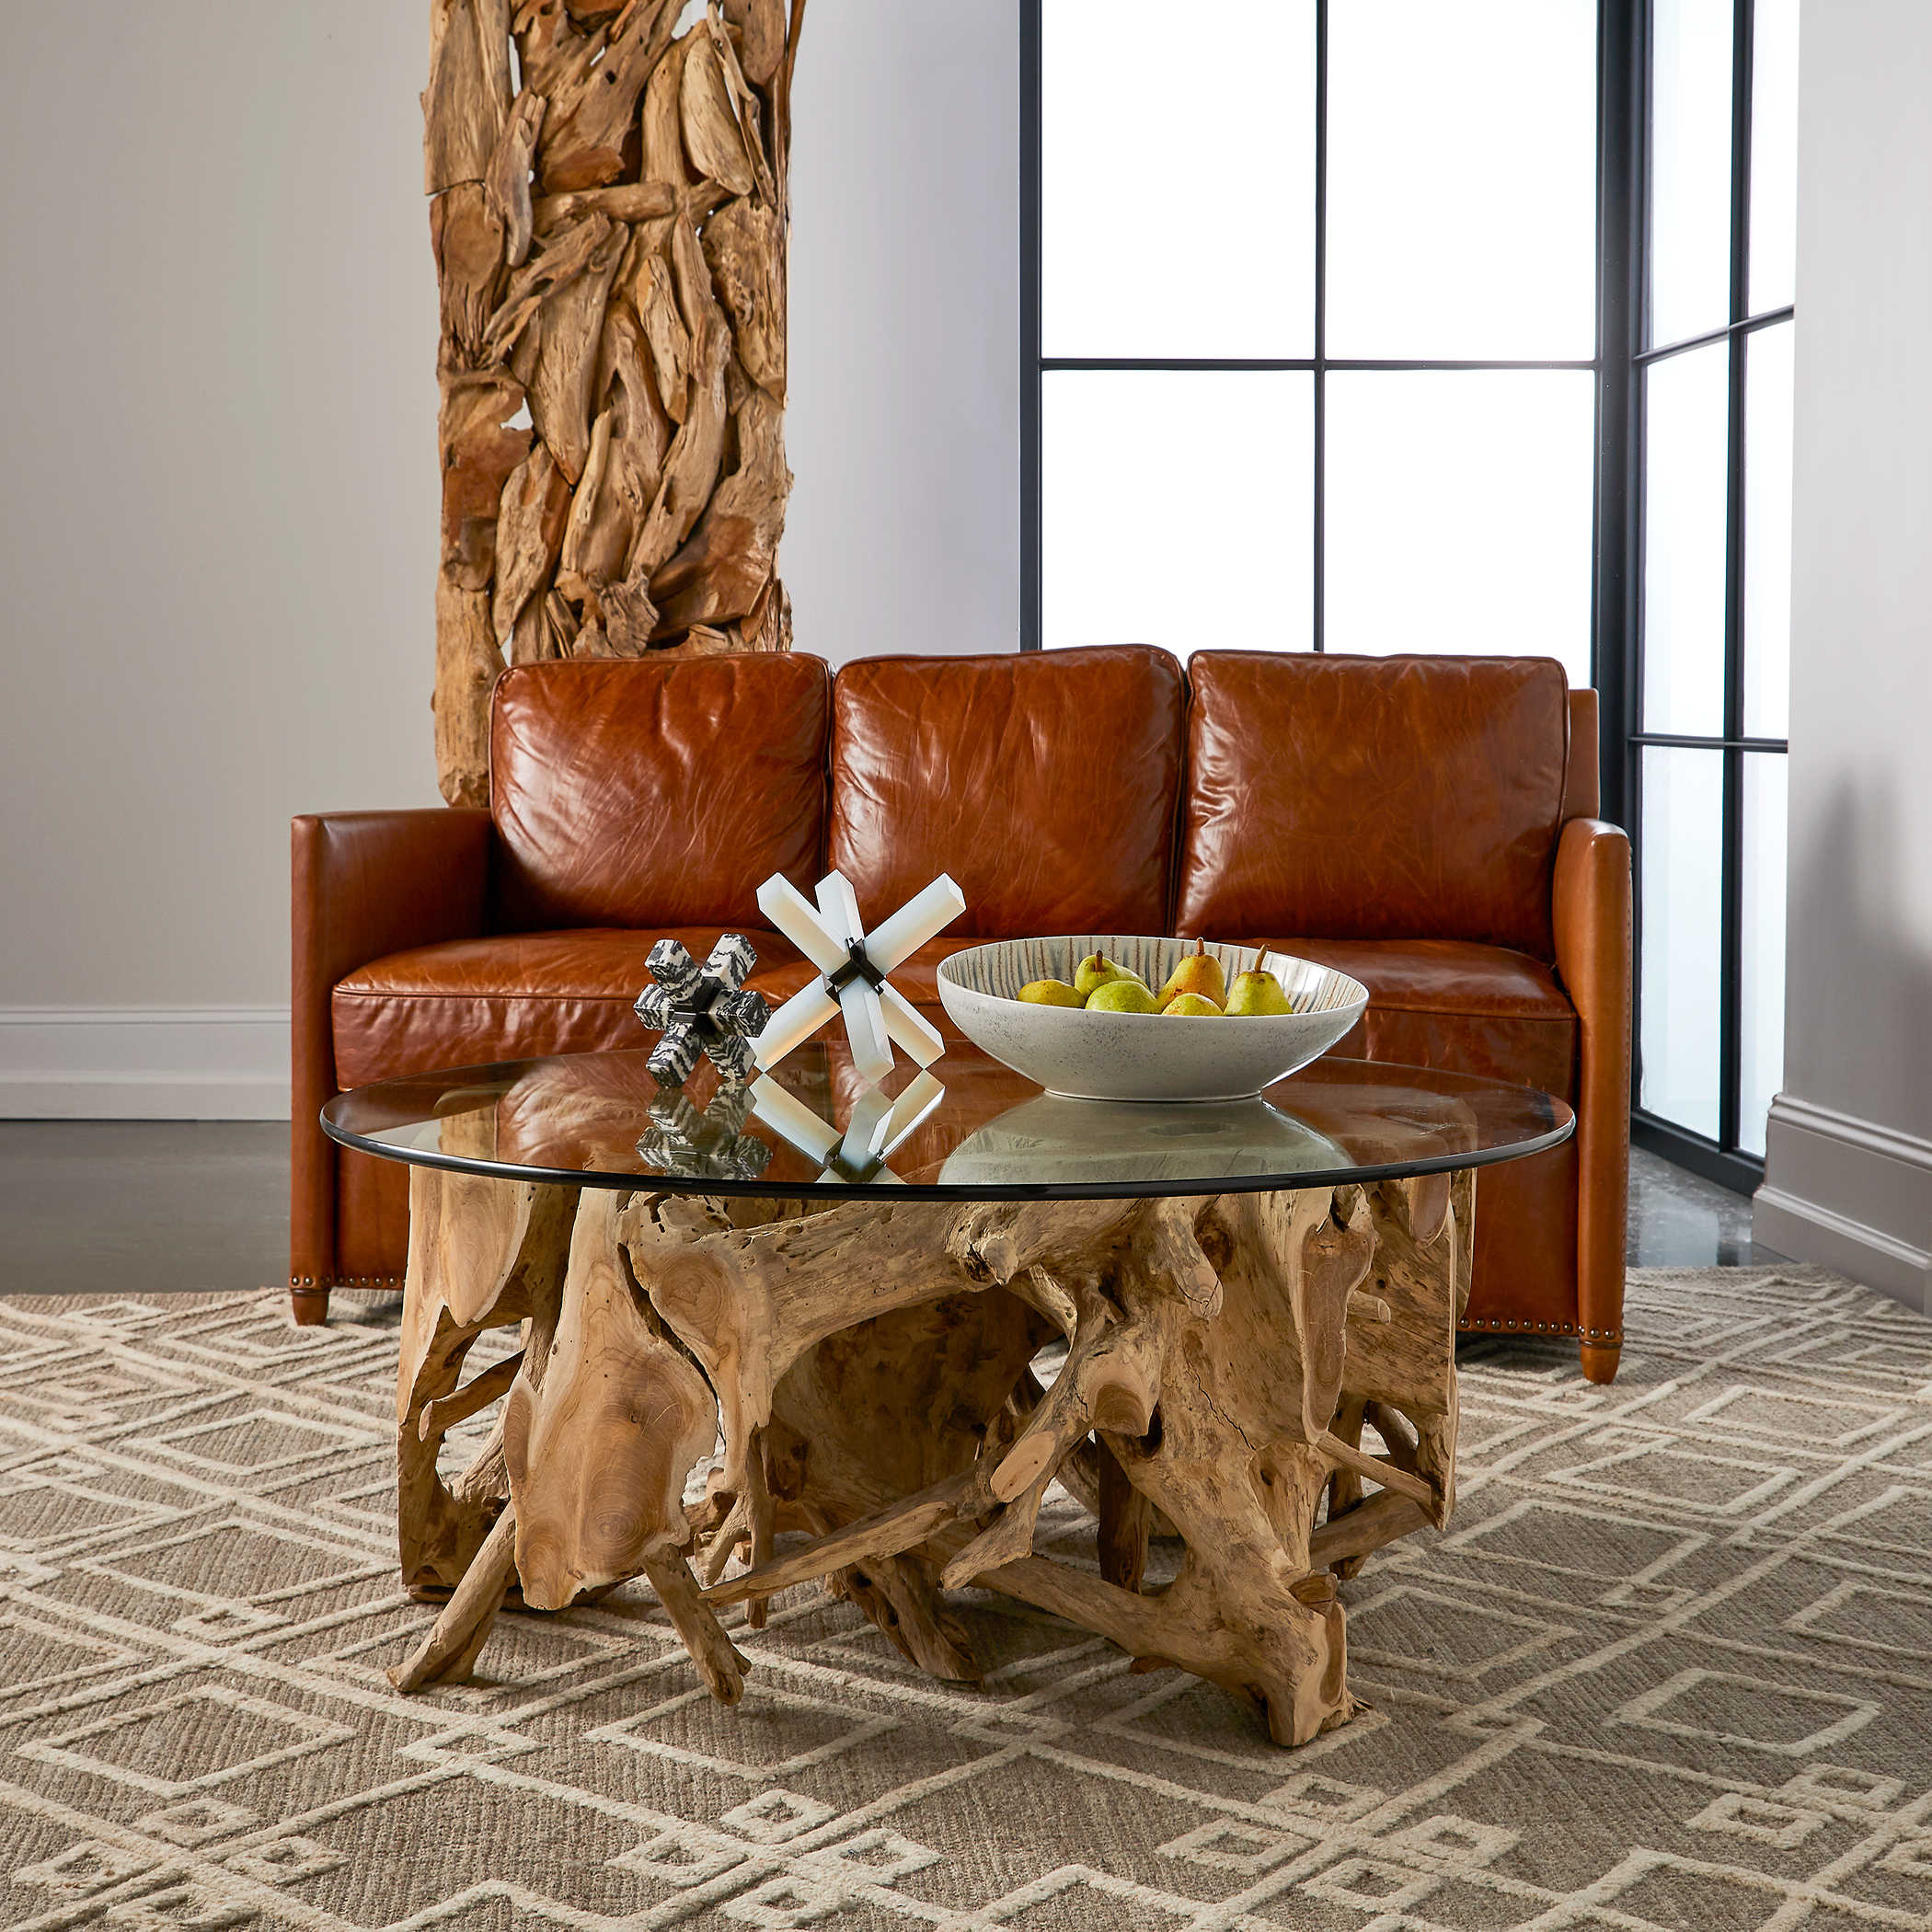 Teak Root Coffee Table, Round 2 CARTONS | Uttermost